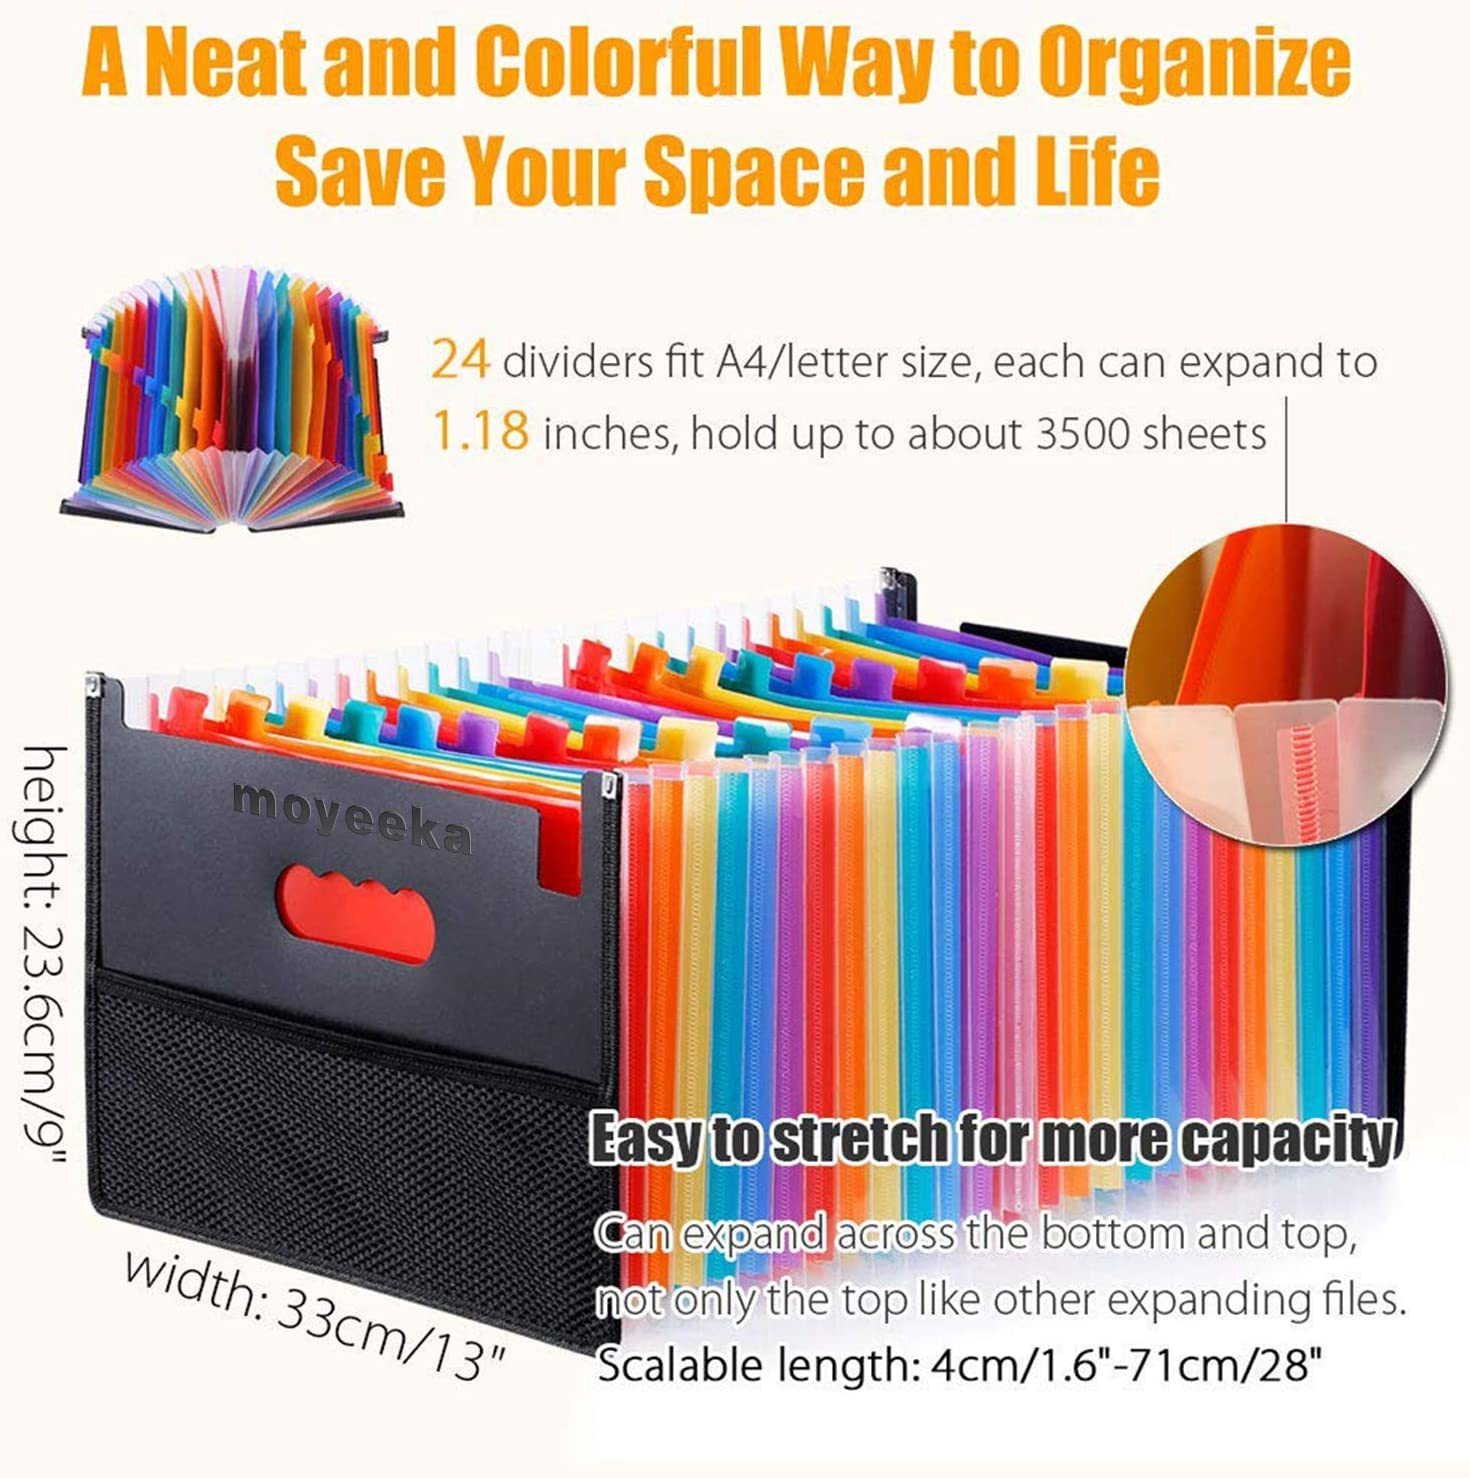 24 Pocket Expanding File Folder with Cloth Edge Wrap, Letter Size Organizer Expandable Accordion A4 Files Bag : Office Products